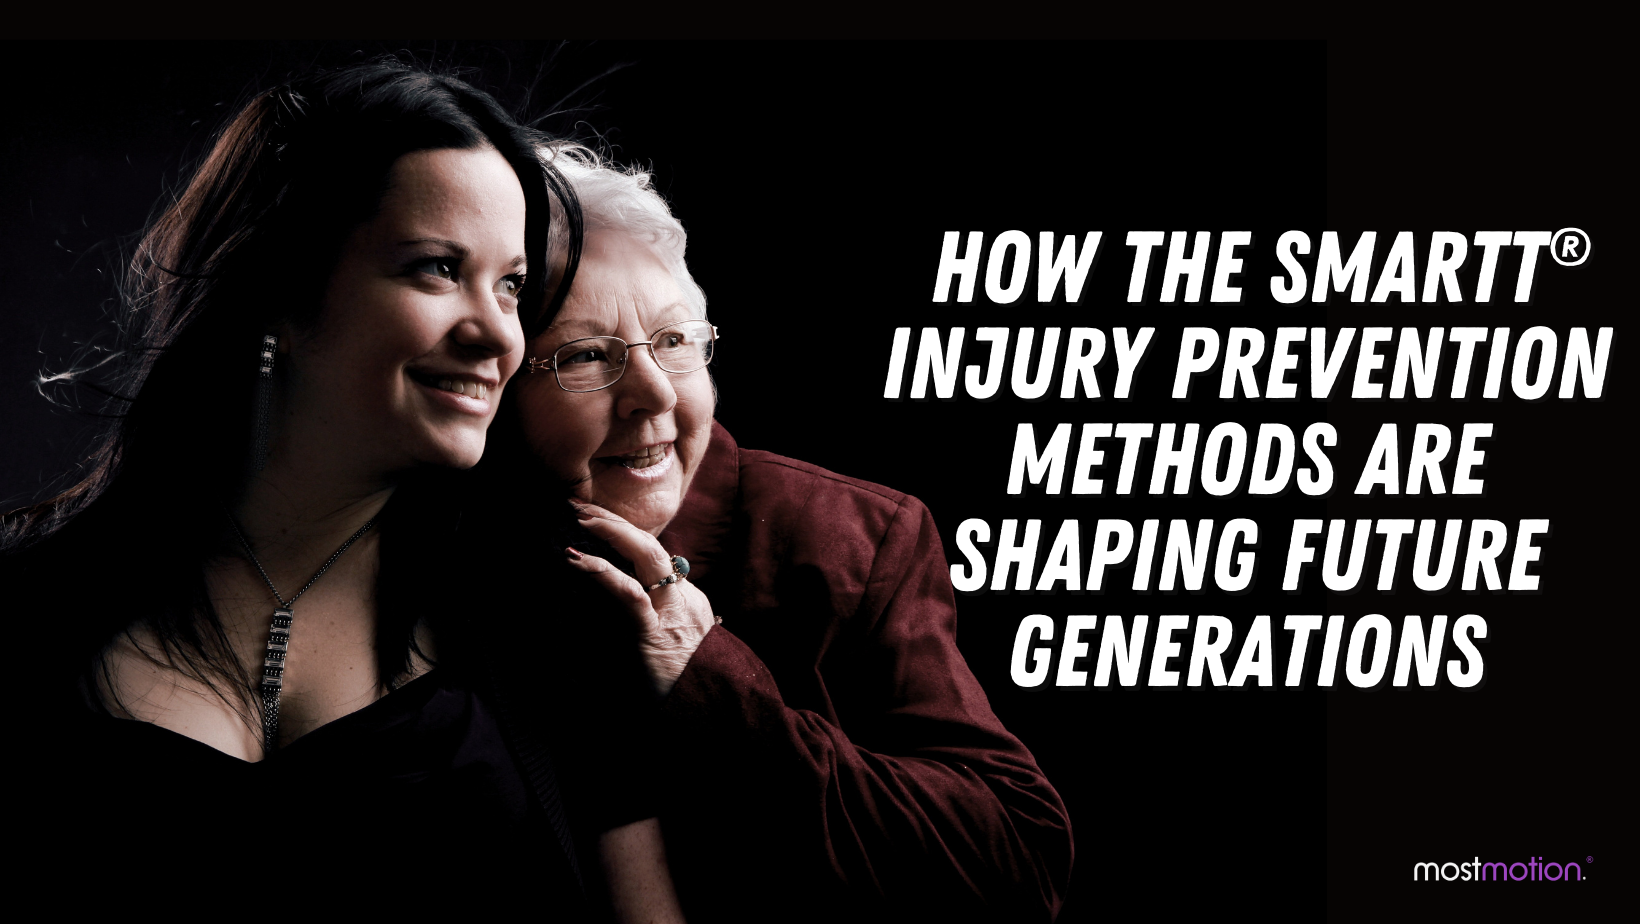 How the SMARTT® Injury Prevention Methods Are Helping to Shape Future Generations